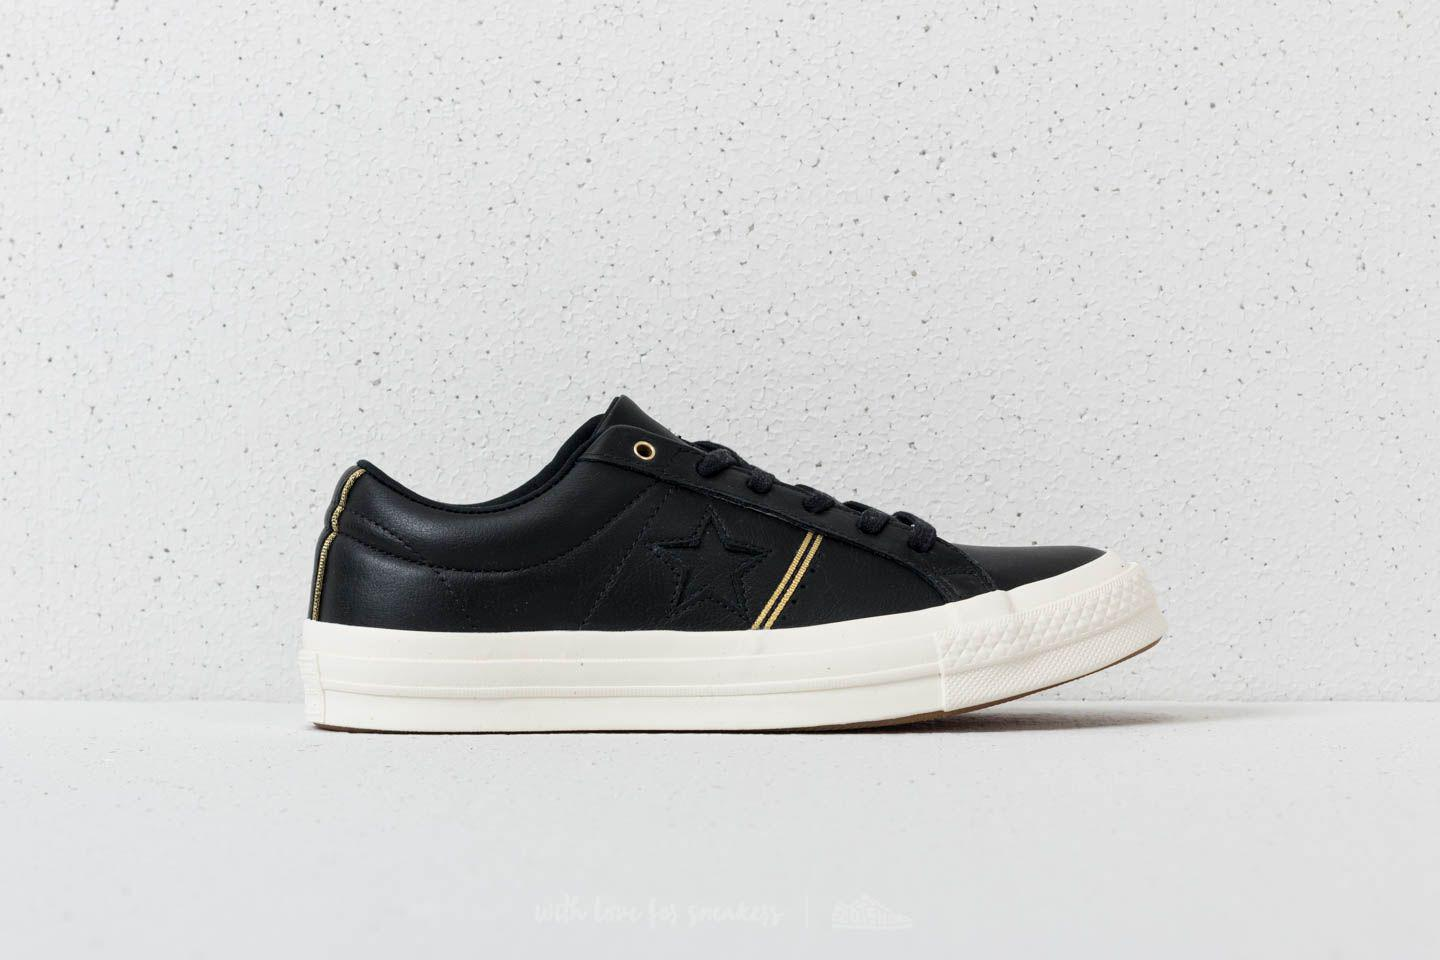 converse lifestyle one star ox leather